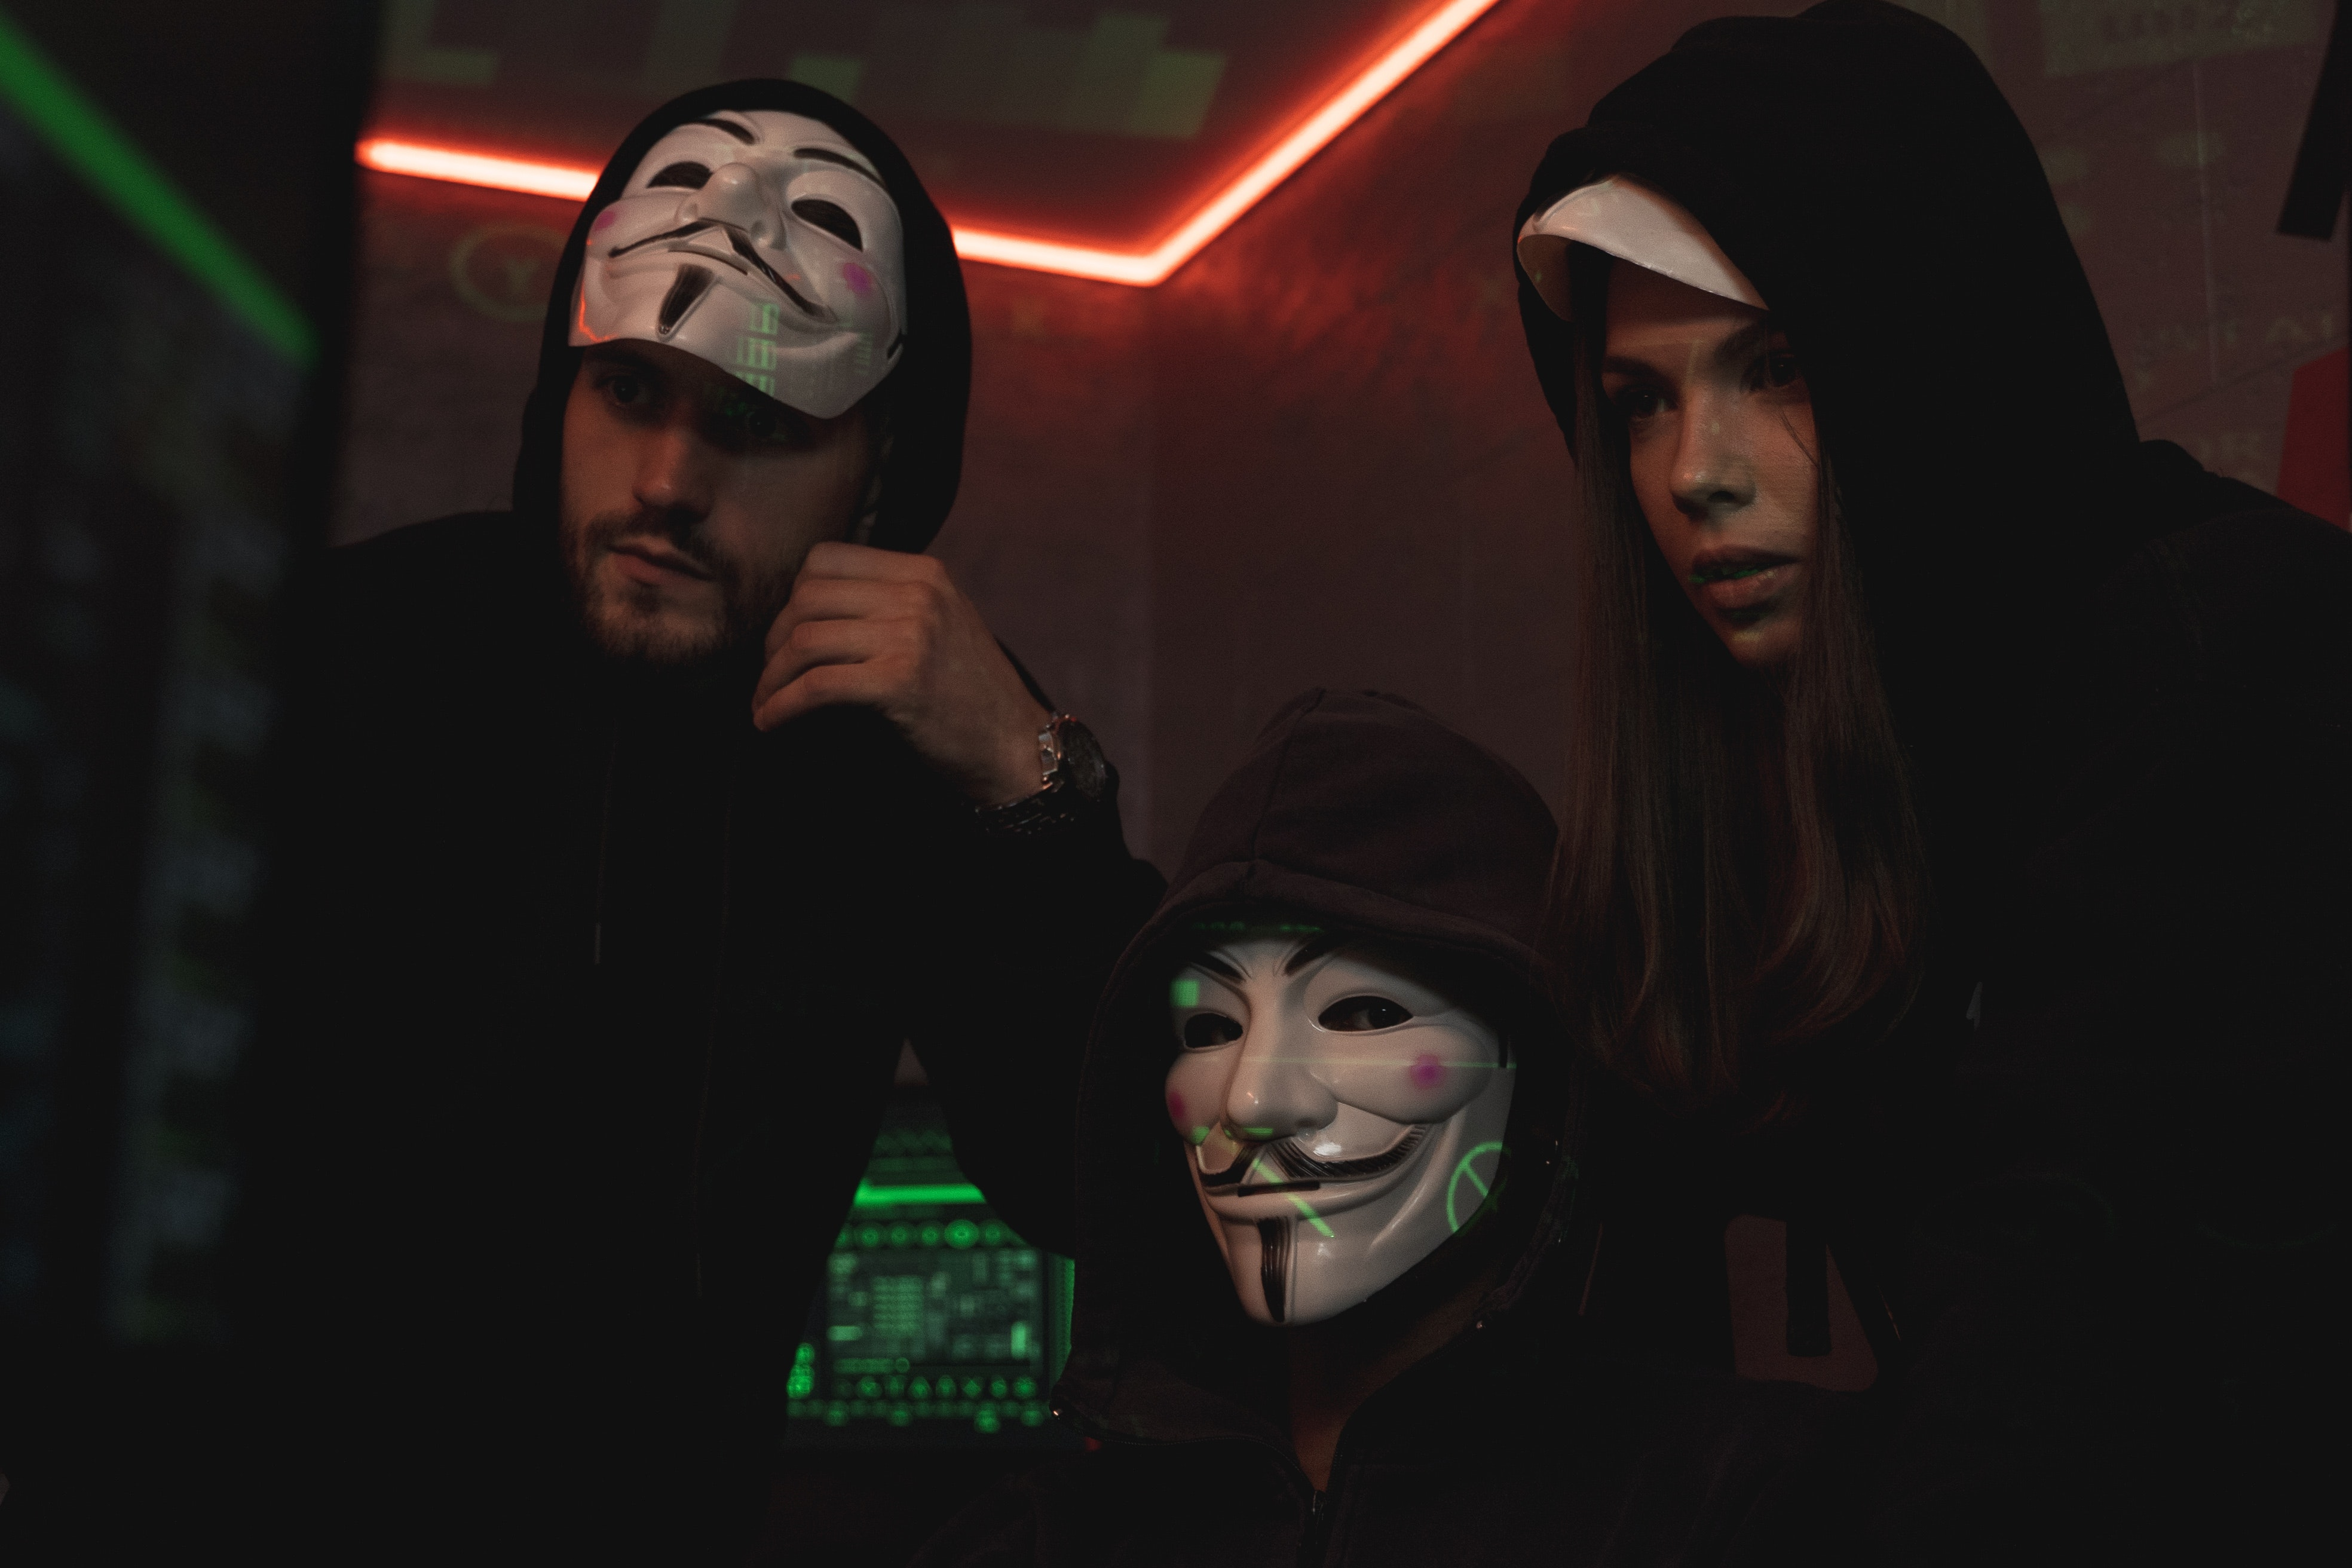 3 hackers wearning black hussies and masks looking at the kali linux machine screen